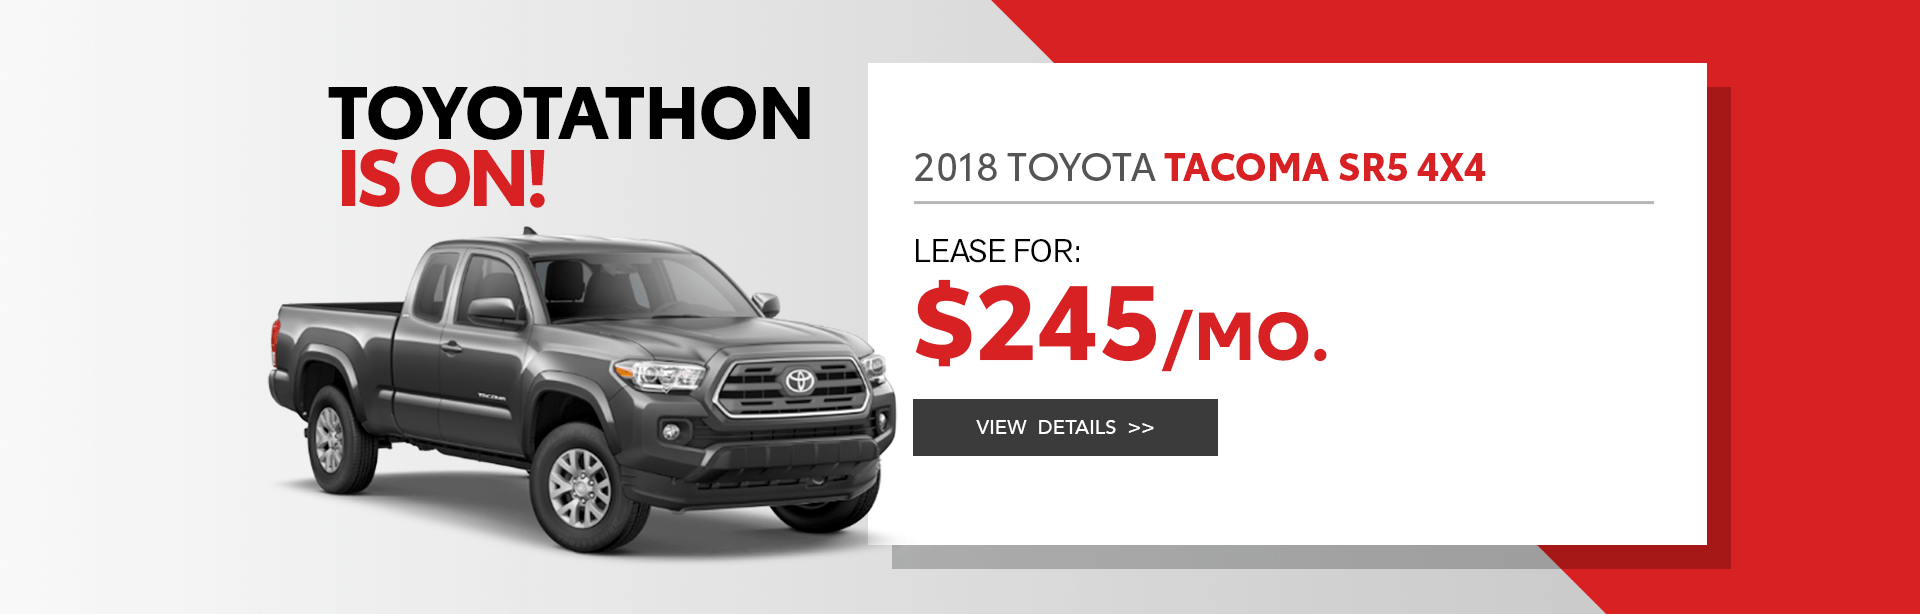 2018 Toyota Tacoma Lease Offer